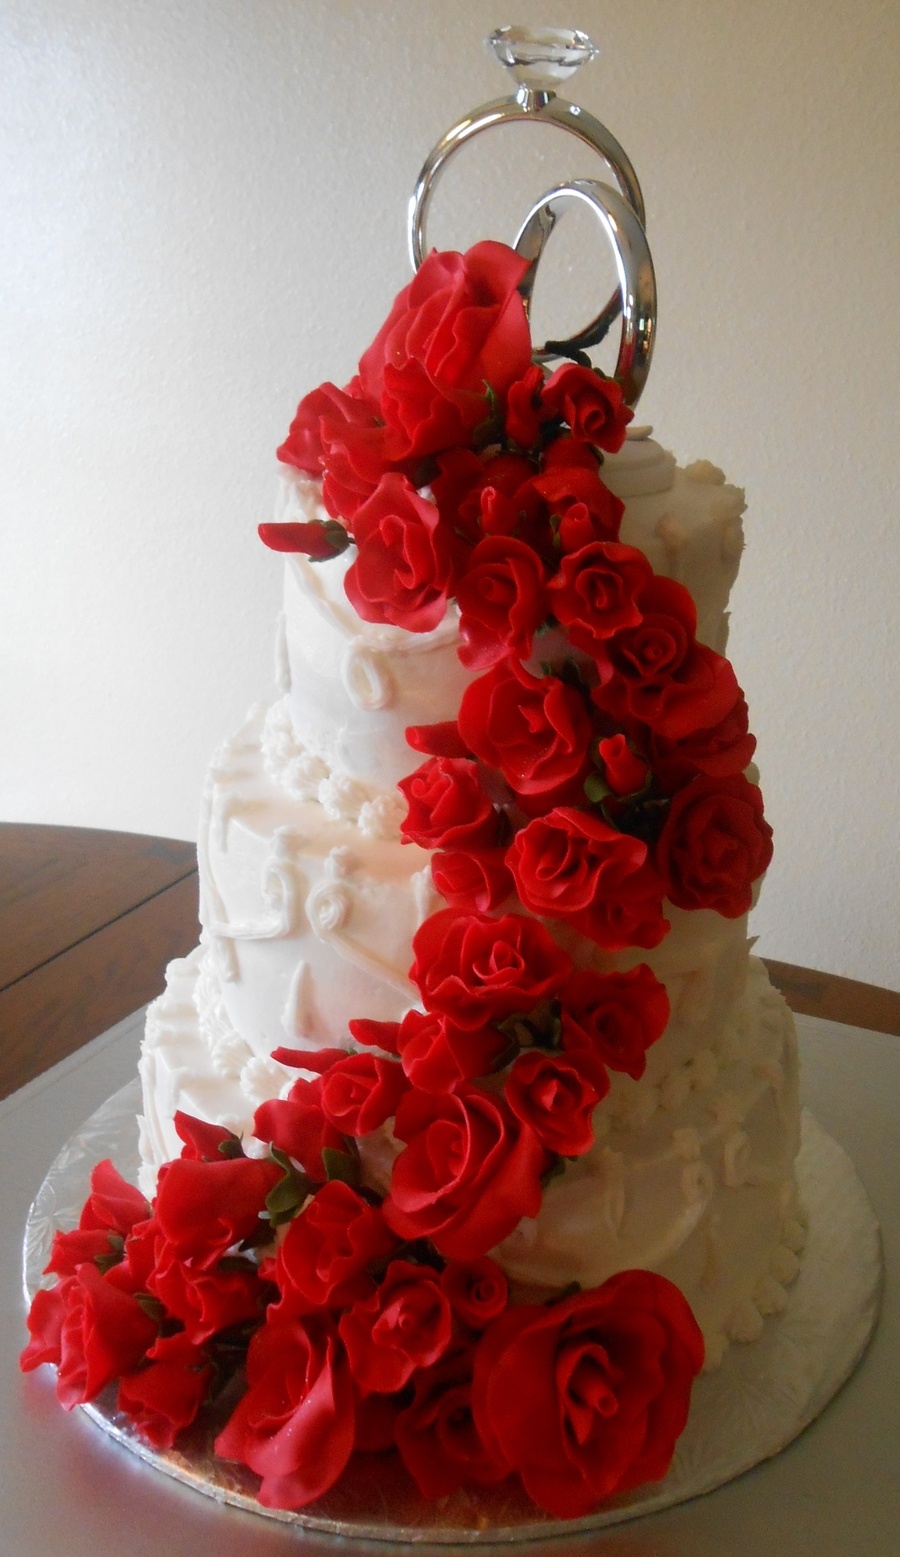 Red Roses Wedding Cake All Fondantgumpaste Was White Vanilla With Fresh Strawberry Filling And Simple Buttercream